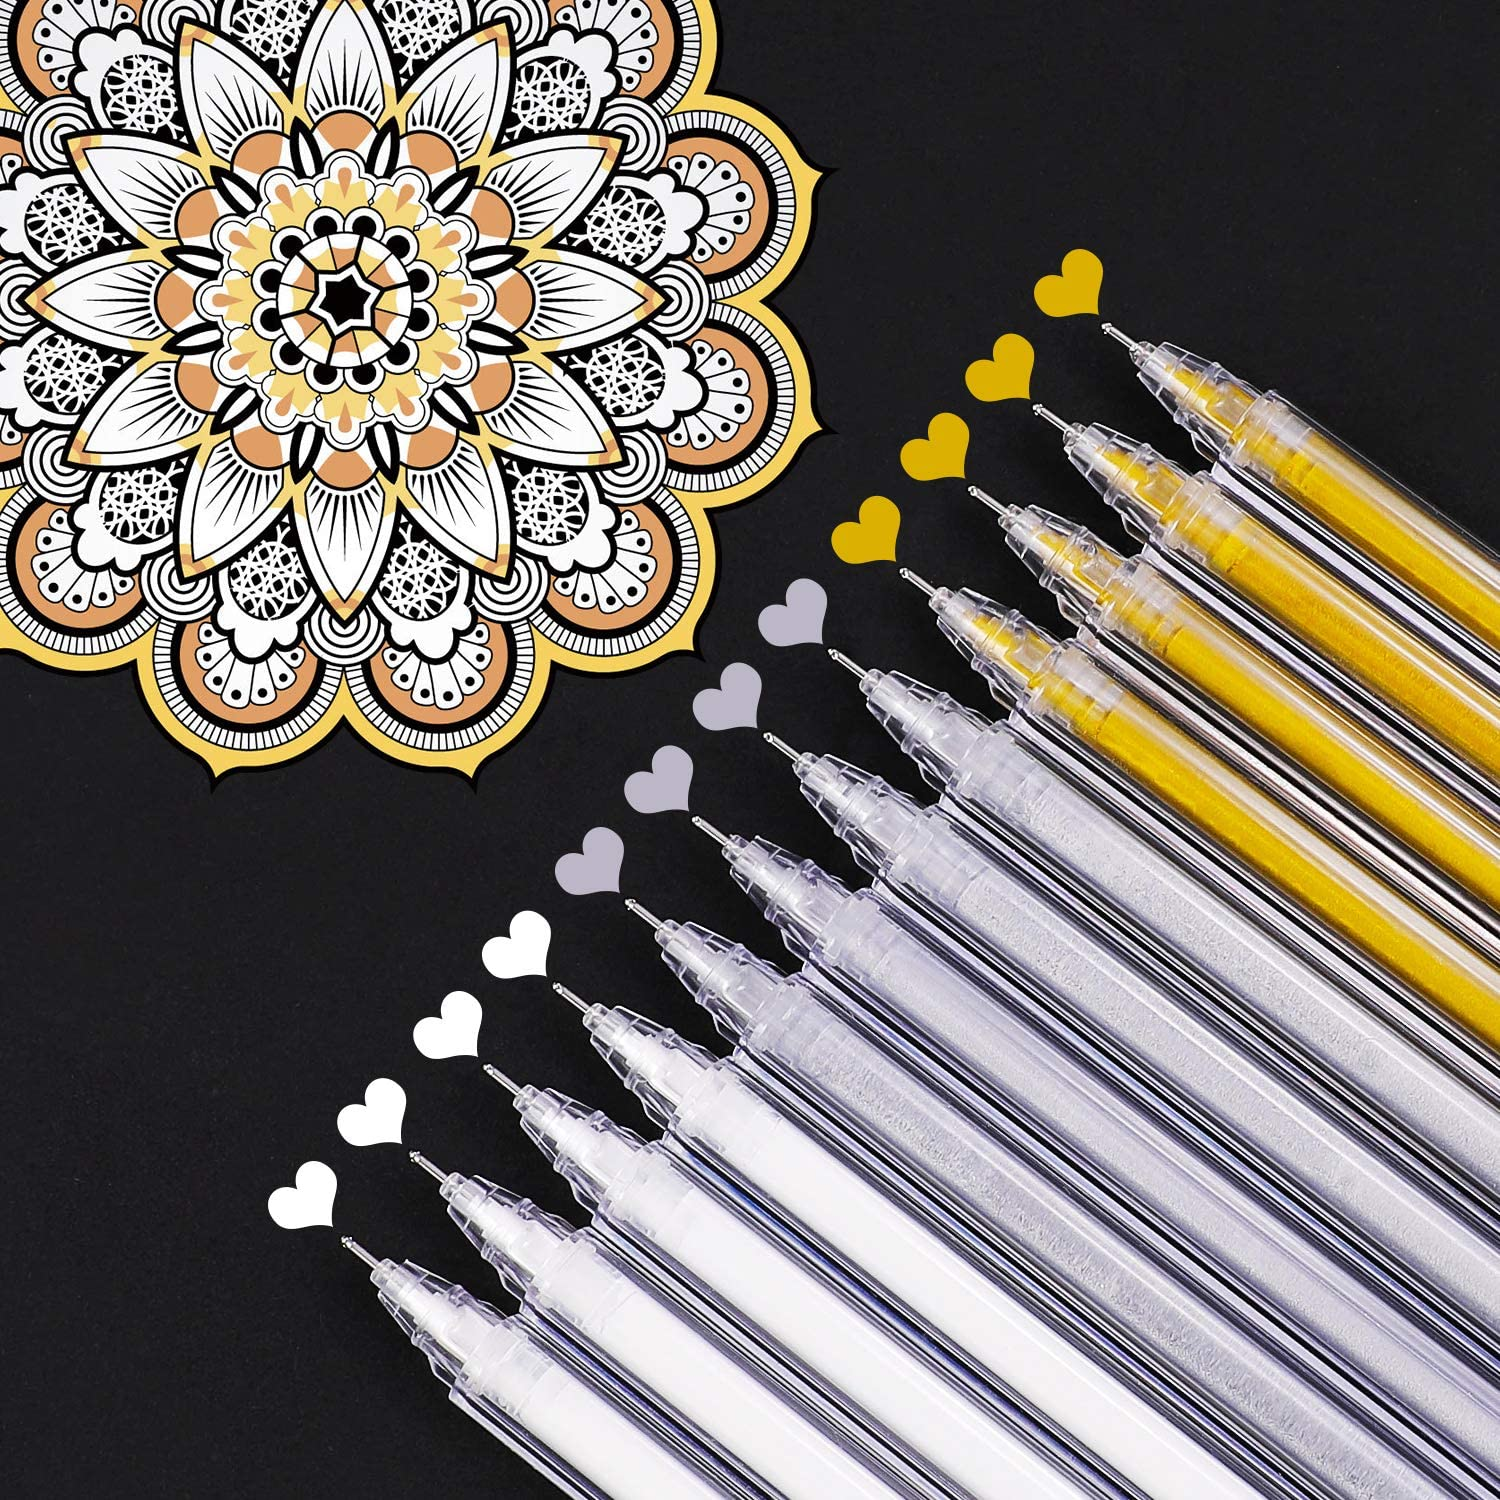 12-Piece Fine Point Tip White Gel Pens for Black Paper Drawing Sketching Pens for Artists and Beginner Painters Adult Coloring Rocks Painting Dyvicl White Ink Pens Illustration